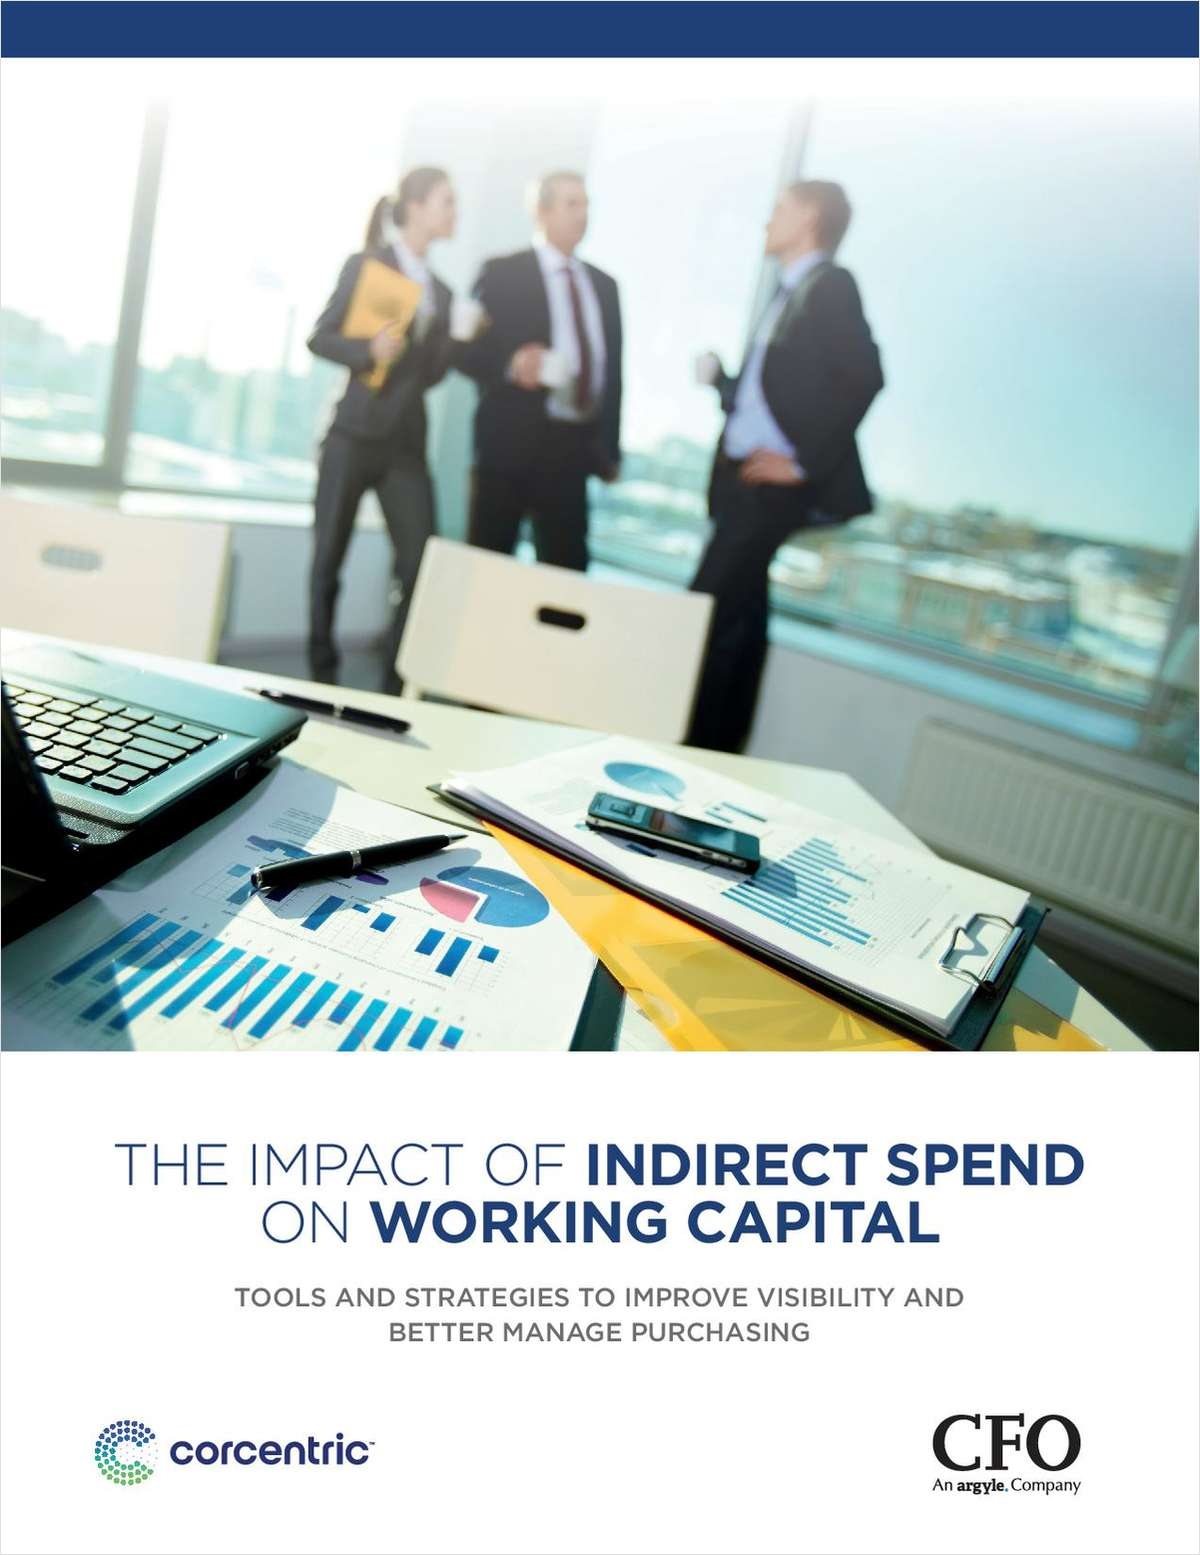 THE IMPACT OF INDIRECT SPEND ON WORKING CAPITAL